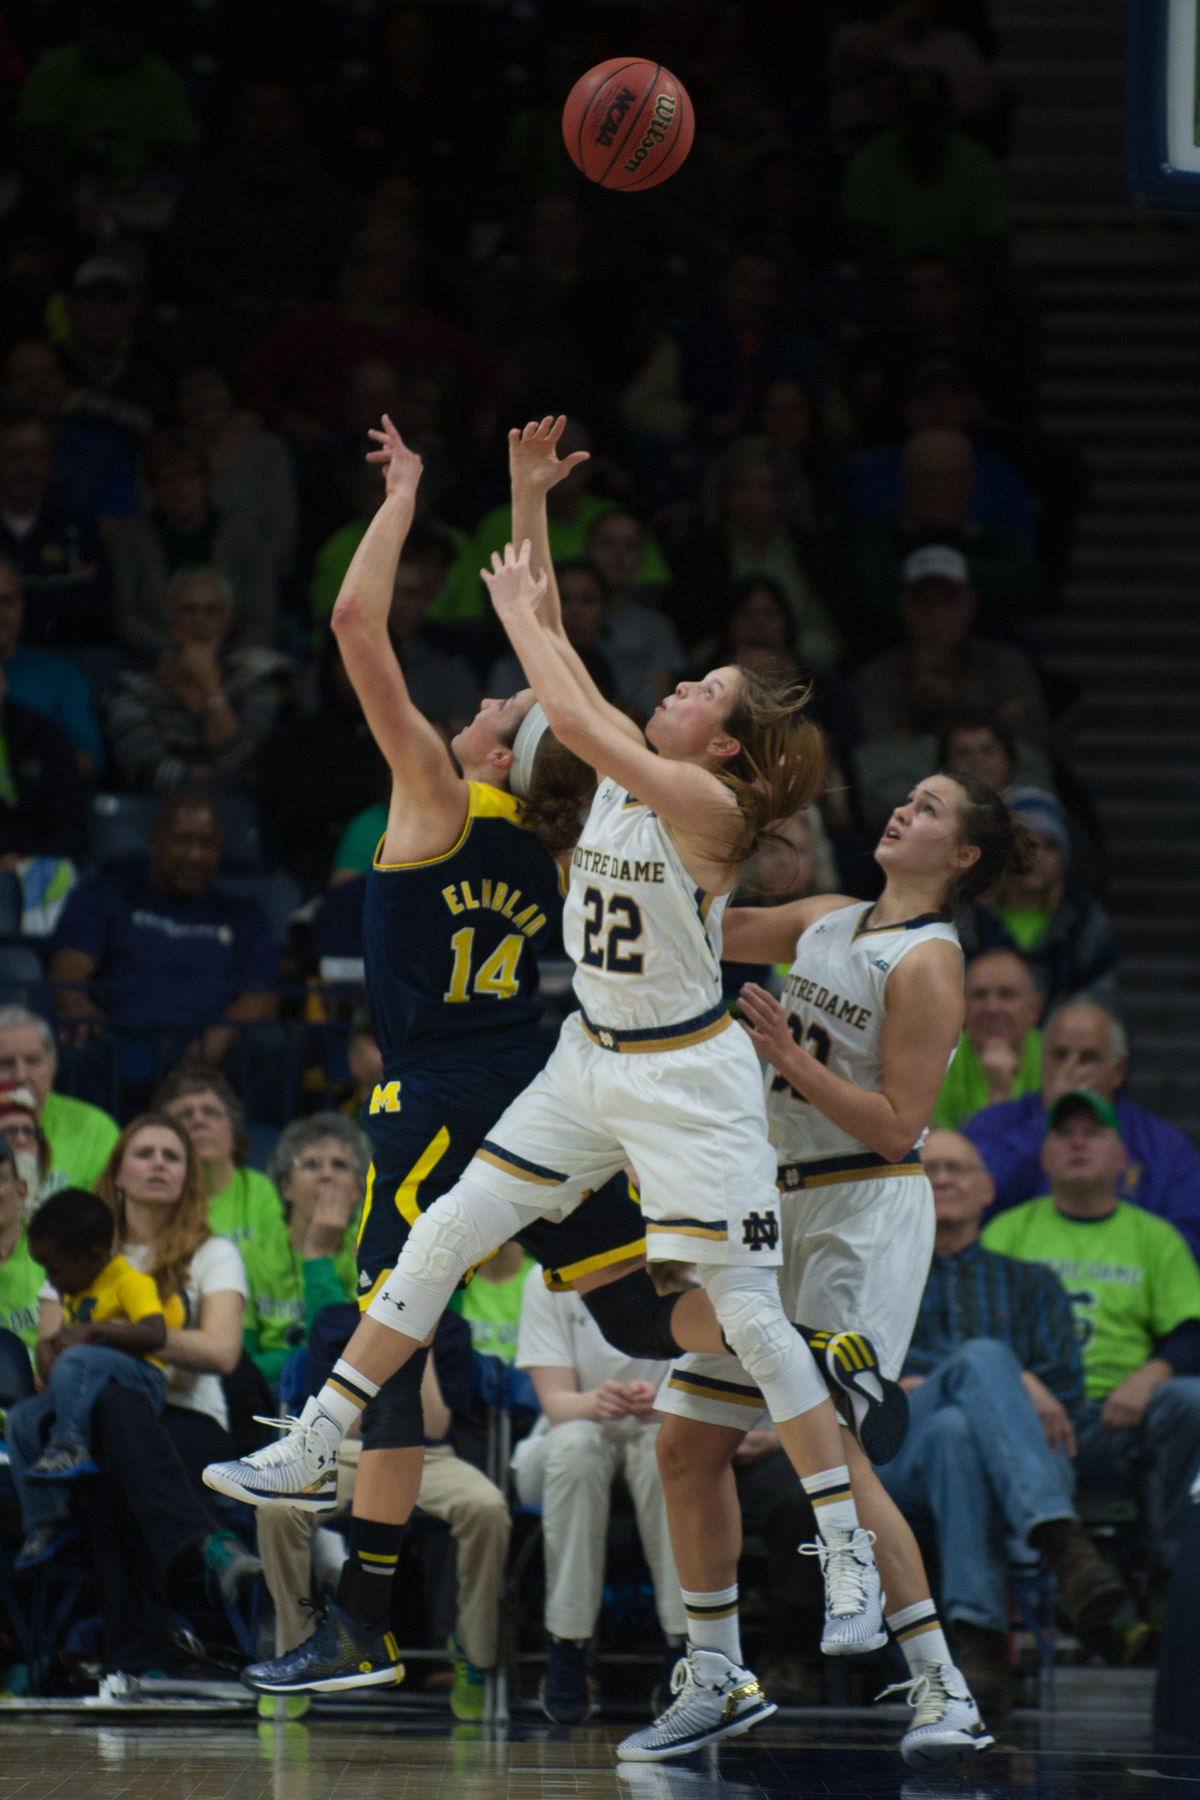 Irish senior guard Madison Cable leaps for a rebound during a 70-50 win over Michigan on Dec. 13 at Purcell Pavilion.